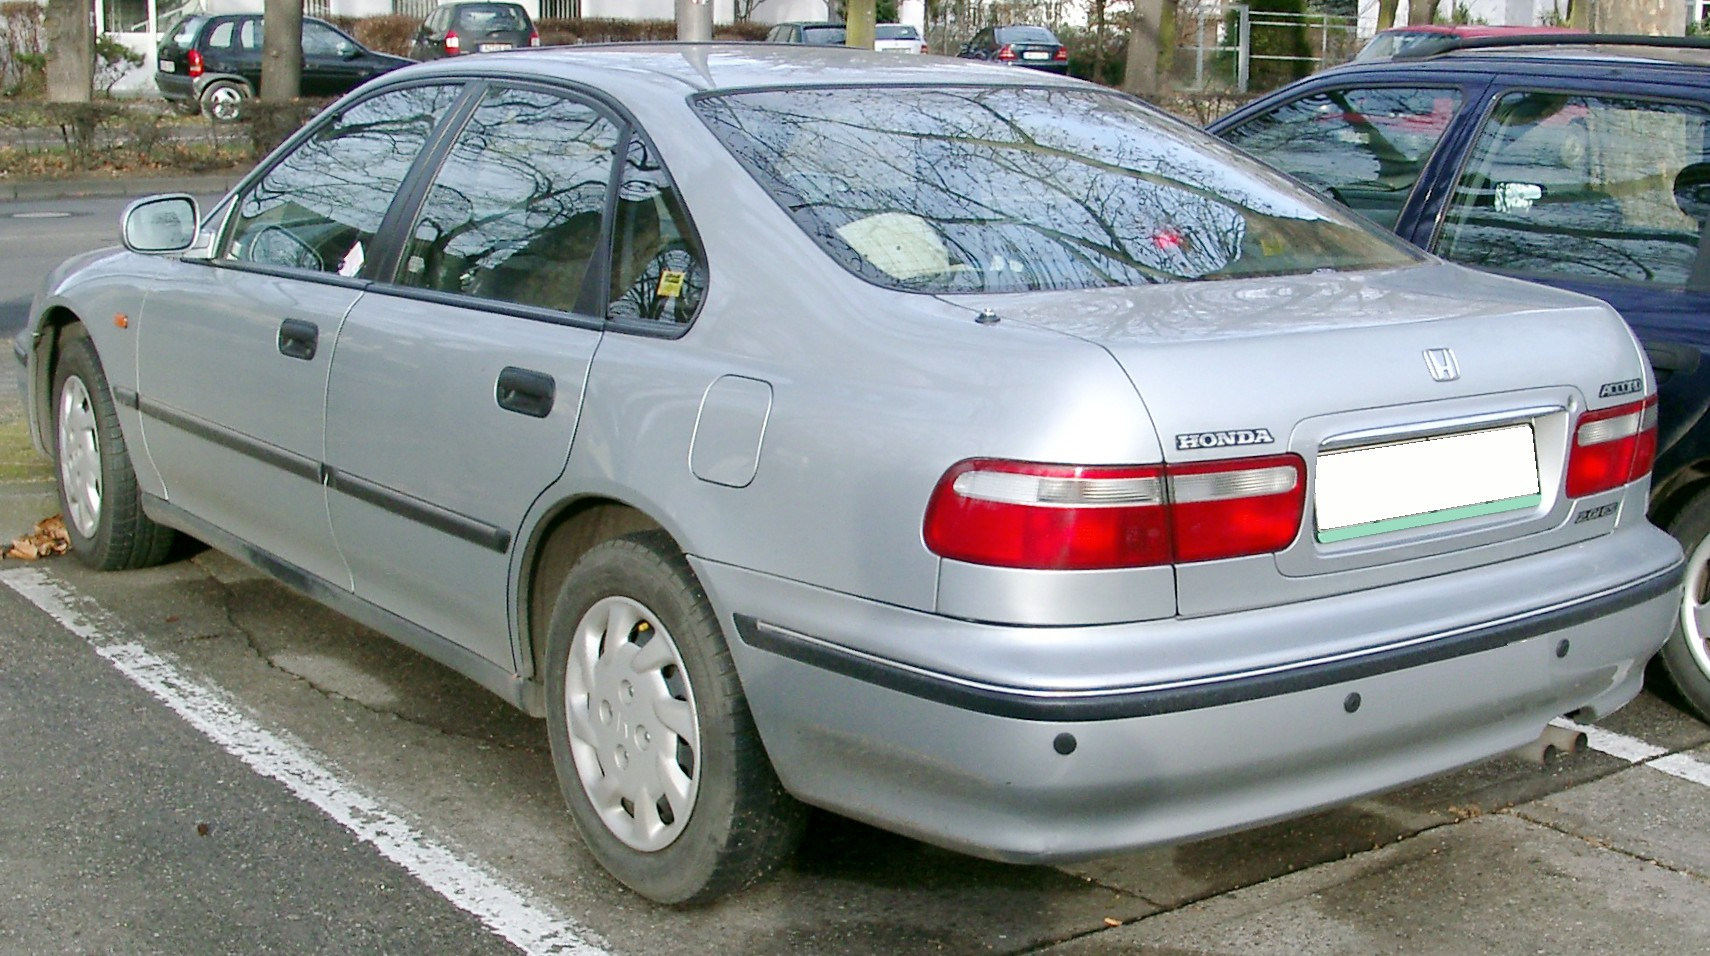 File:Honda Accord rear 20080205.jpg